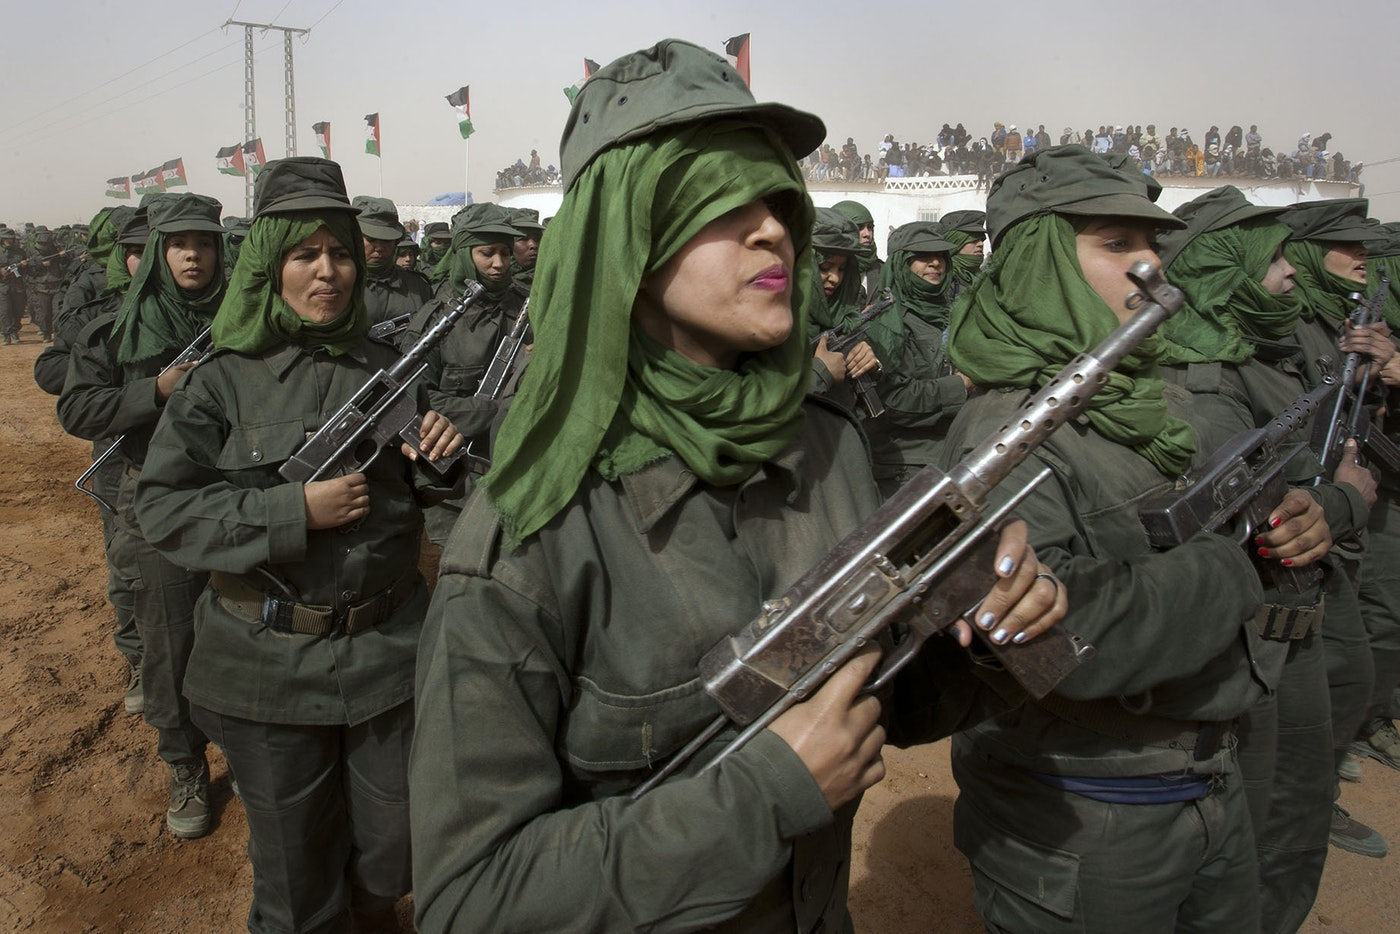 Five hundred Sahrawi women march in a military parade to commemorate the fortieth anniversary of Western Sahara's struggle for independence from neighboring Morocco.